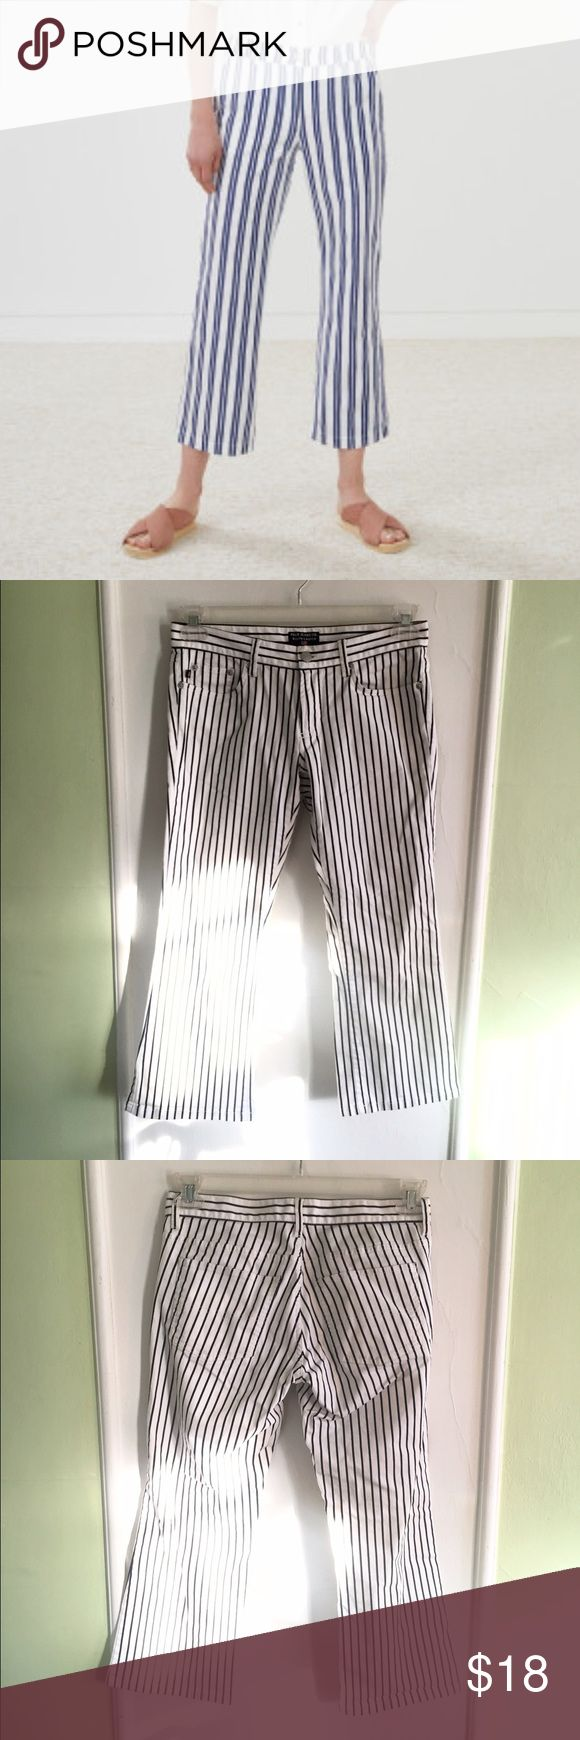 Polo Jeans Co Ralph Lauren b&w stripe crop jeans Polo Jeans Co Ralph Lauren white with back stripes cropped jeans with slight flare. Mid Rise size 4. In like new condition. ***First photo is only to show fit*** Polo by Ralph Lauren Jeans Ankle & Cropped